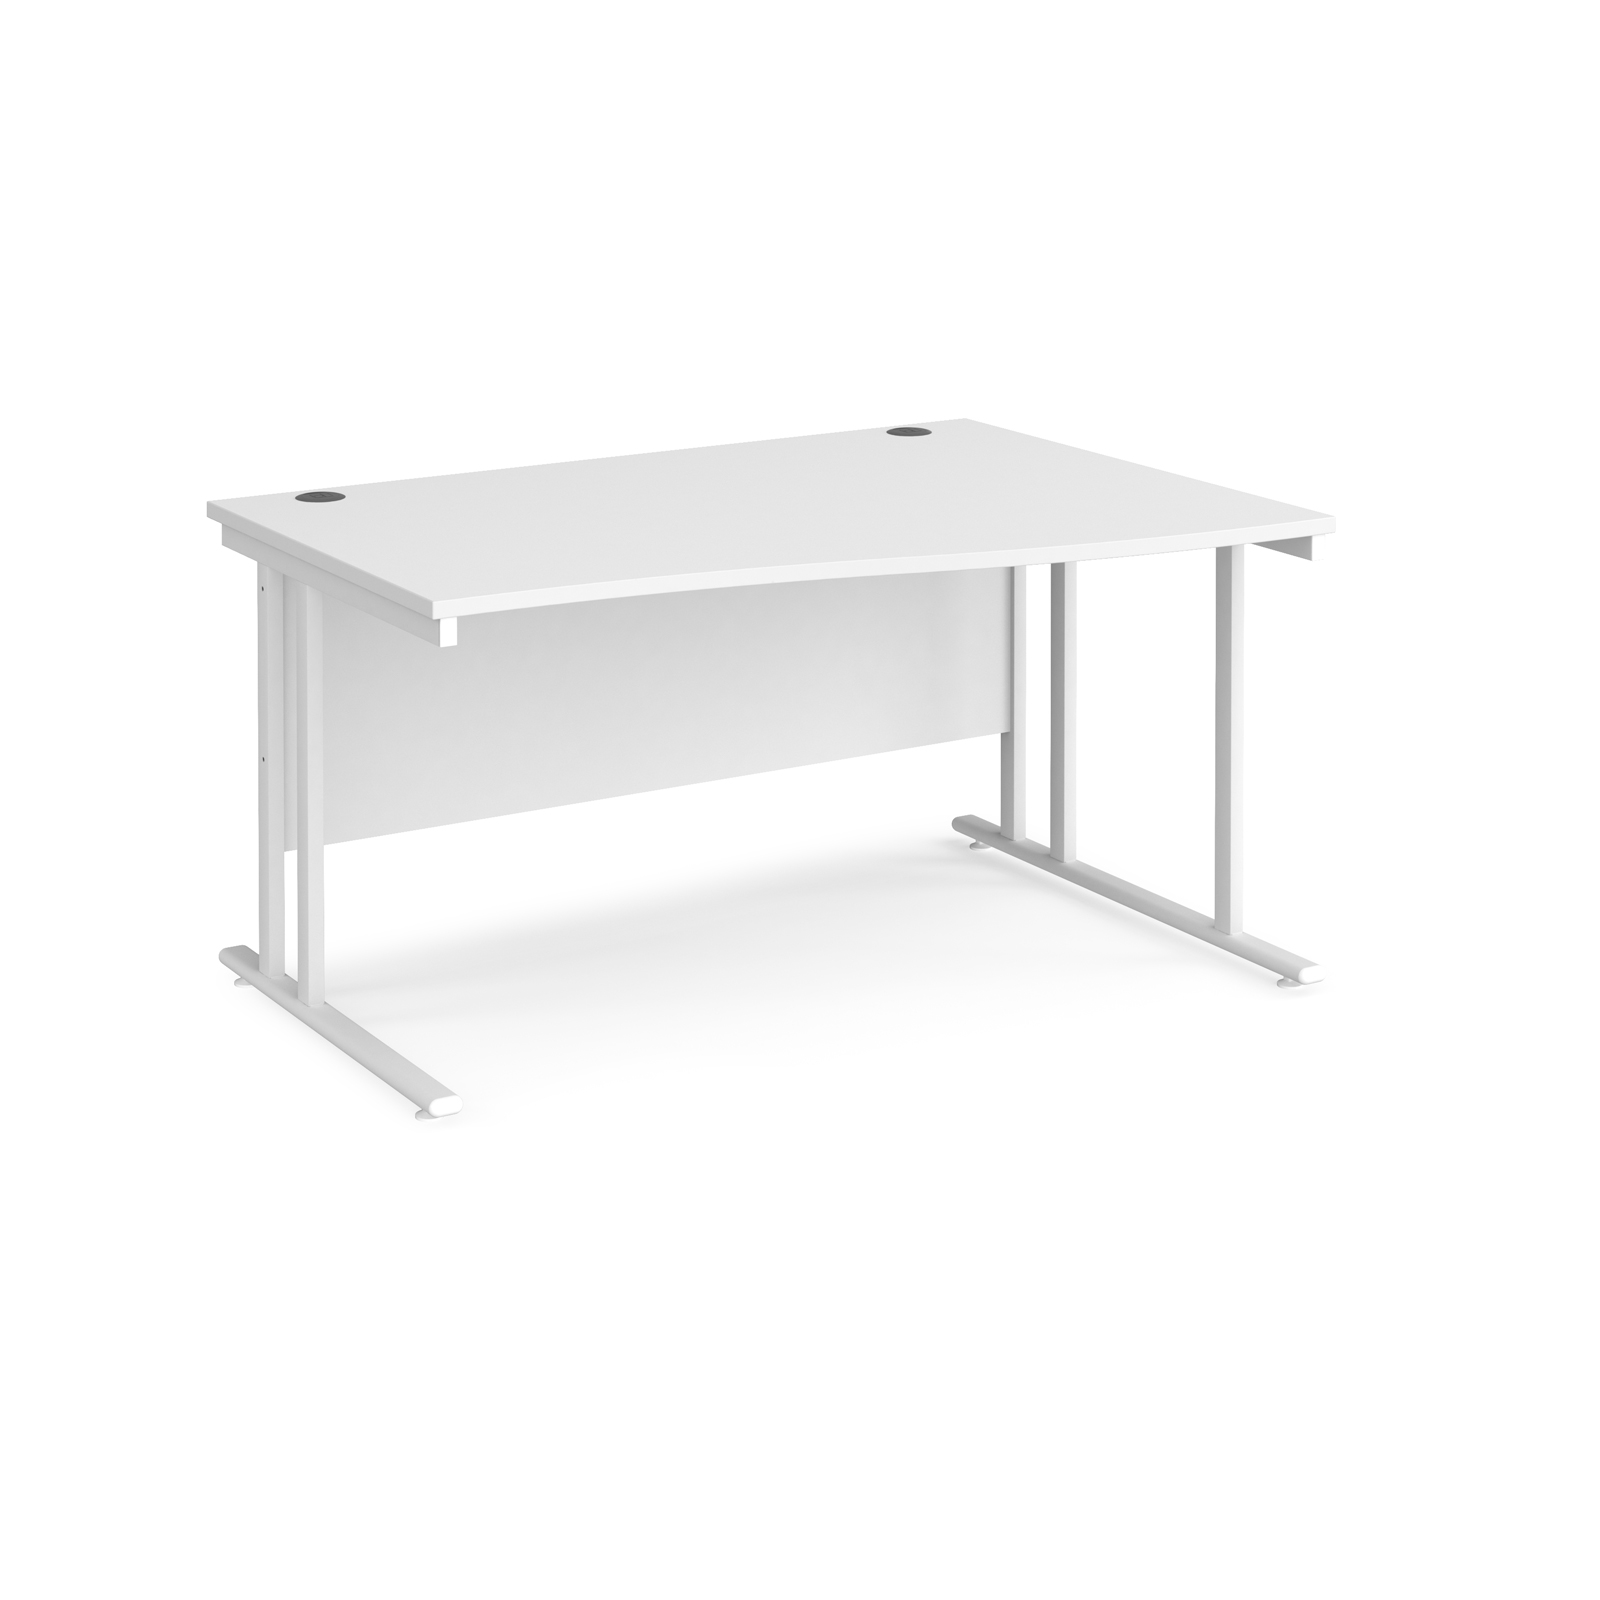 Maestro 25 right hand wave desk 1400mm wide - white cantilever leg frame, white top